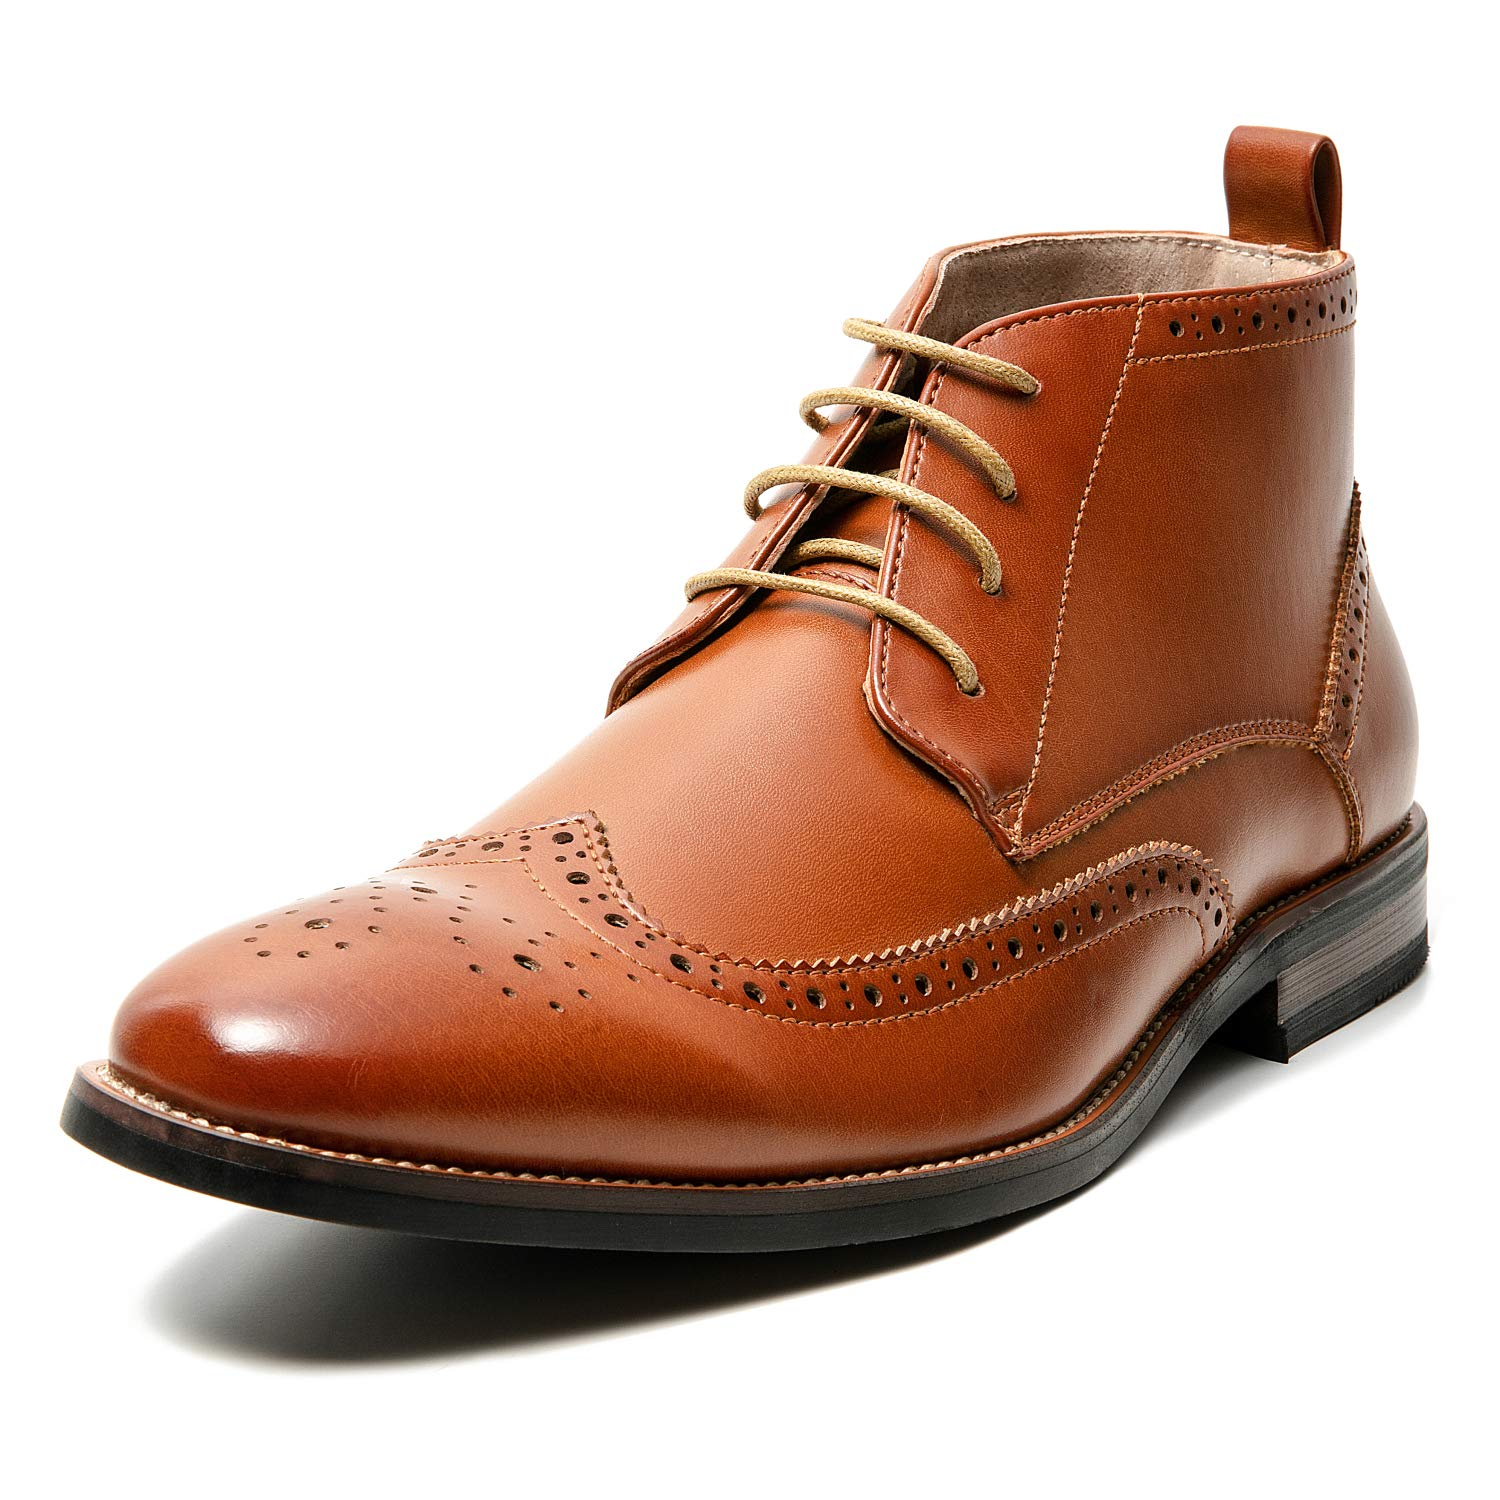 Men's Oxford Dress Leather Lined Round Toe Angle Boots (11 M US, Tan-3)